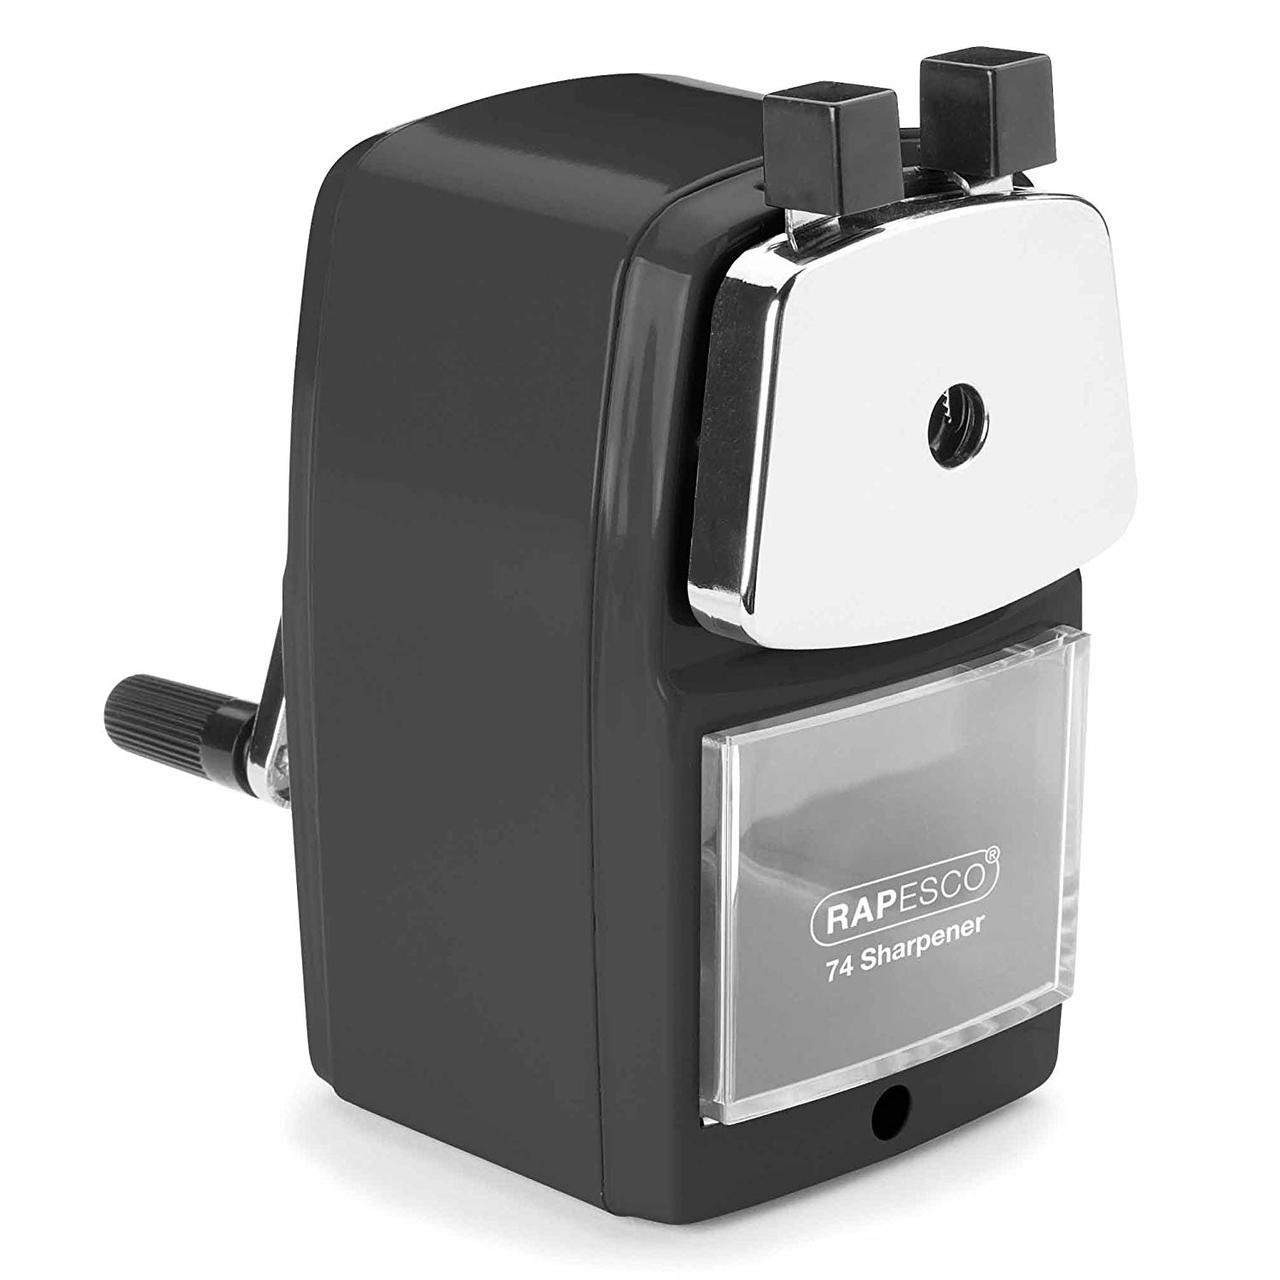 Rapesco 74 Desktop Pencil Sharpener